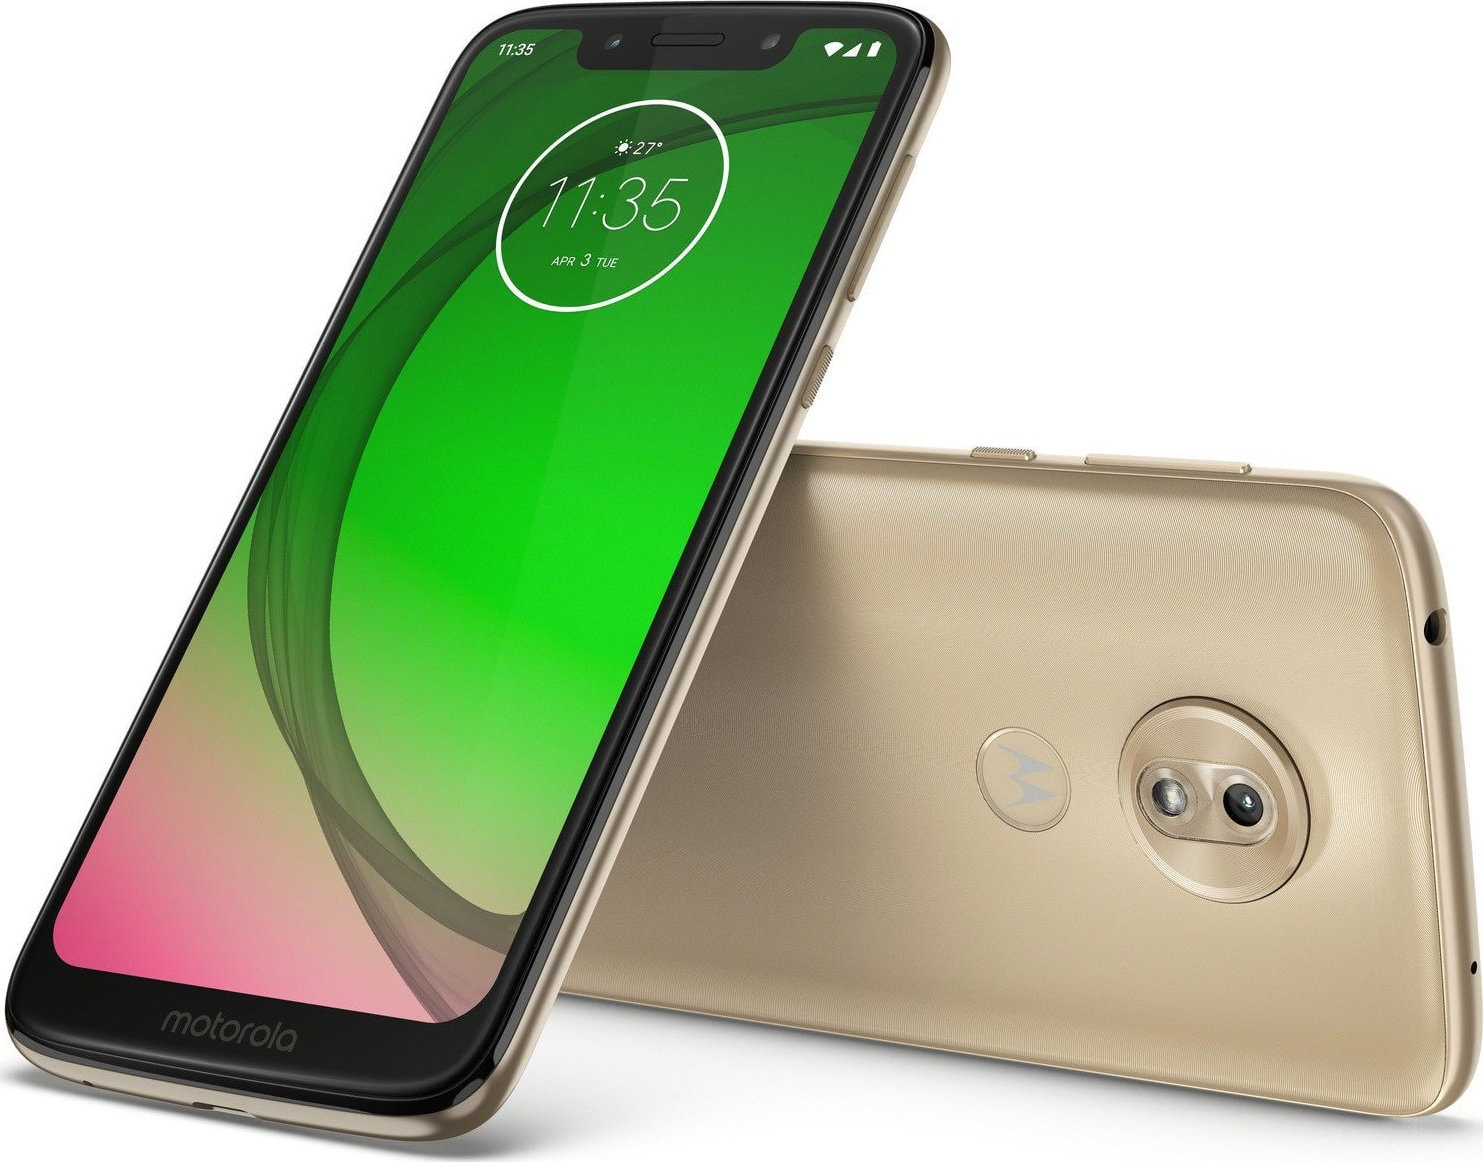 8. Moto G7 Play – The Best Budget Smartphone of 2019 for Gaming